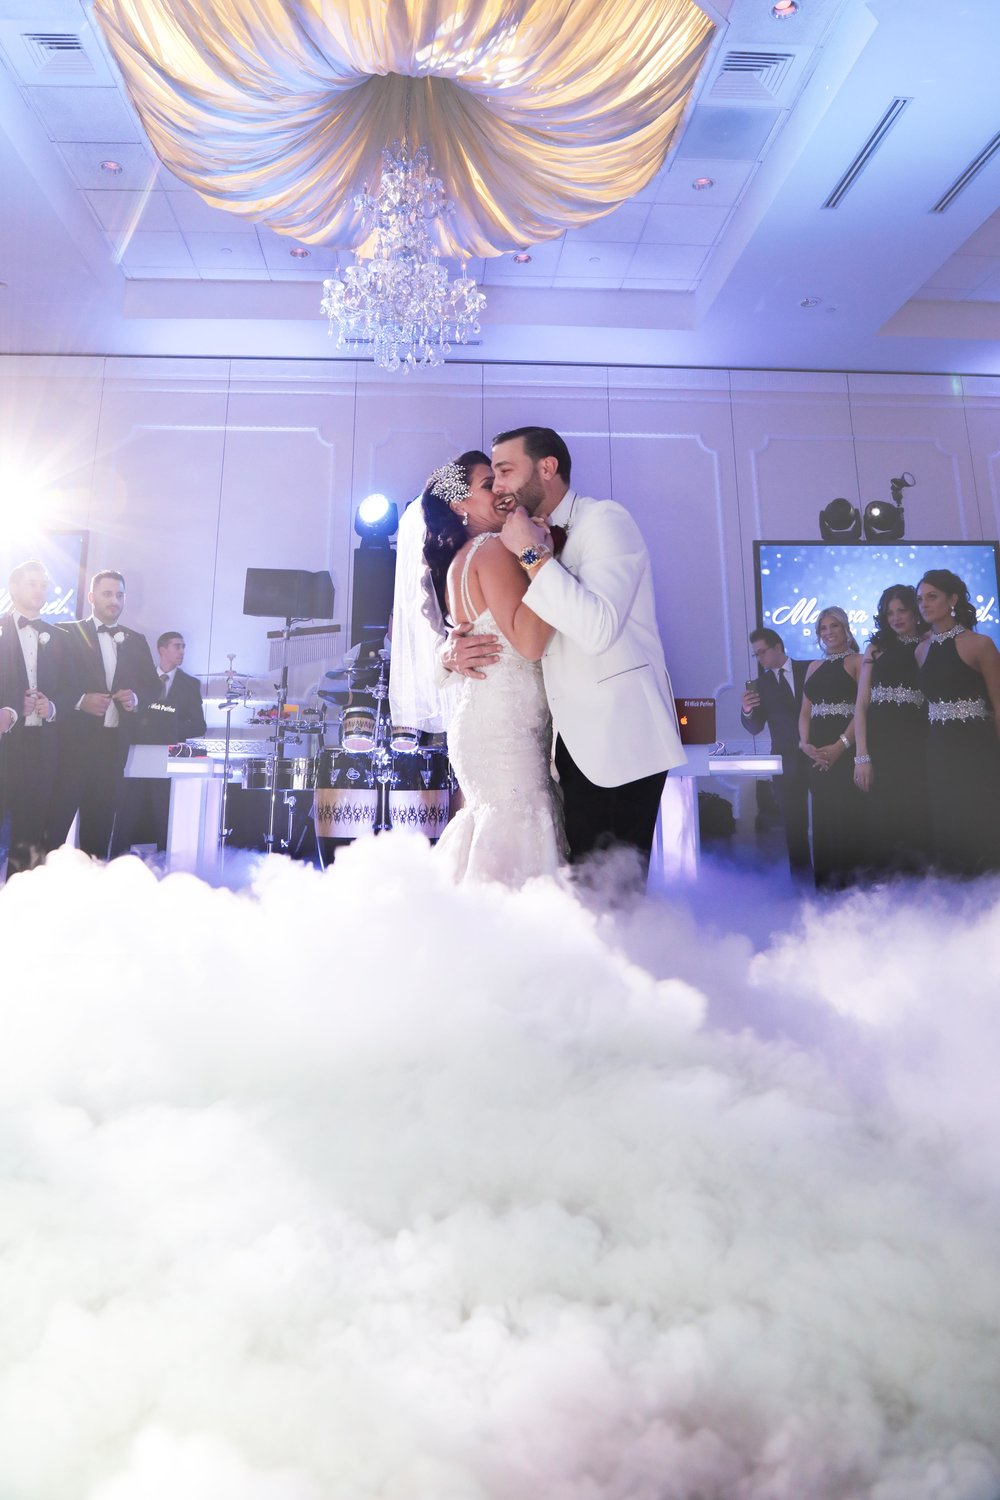 dance on clouds - Beautiful atmosphere for the new Mr. & Mrs.